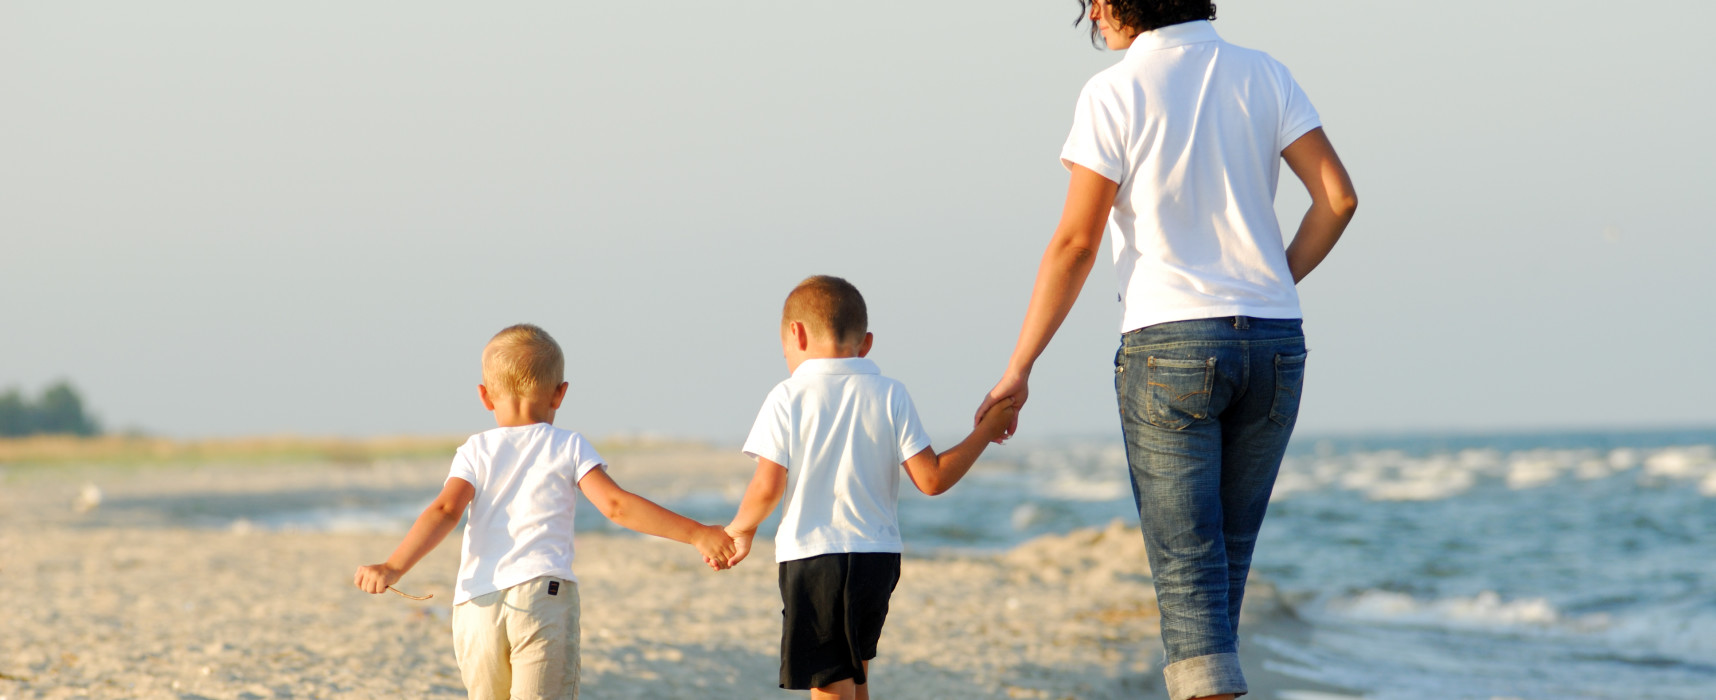 How To Protect Your Children From The Sun